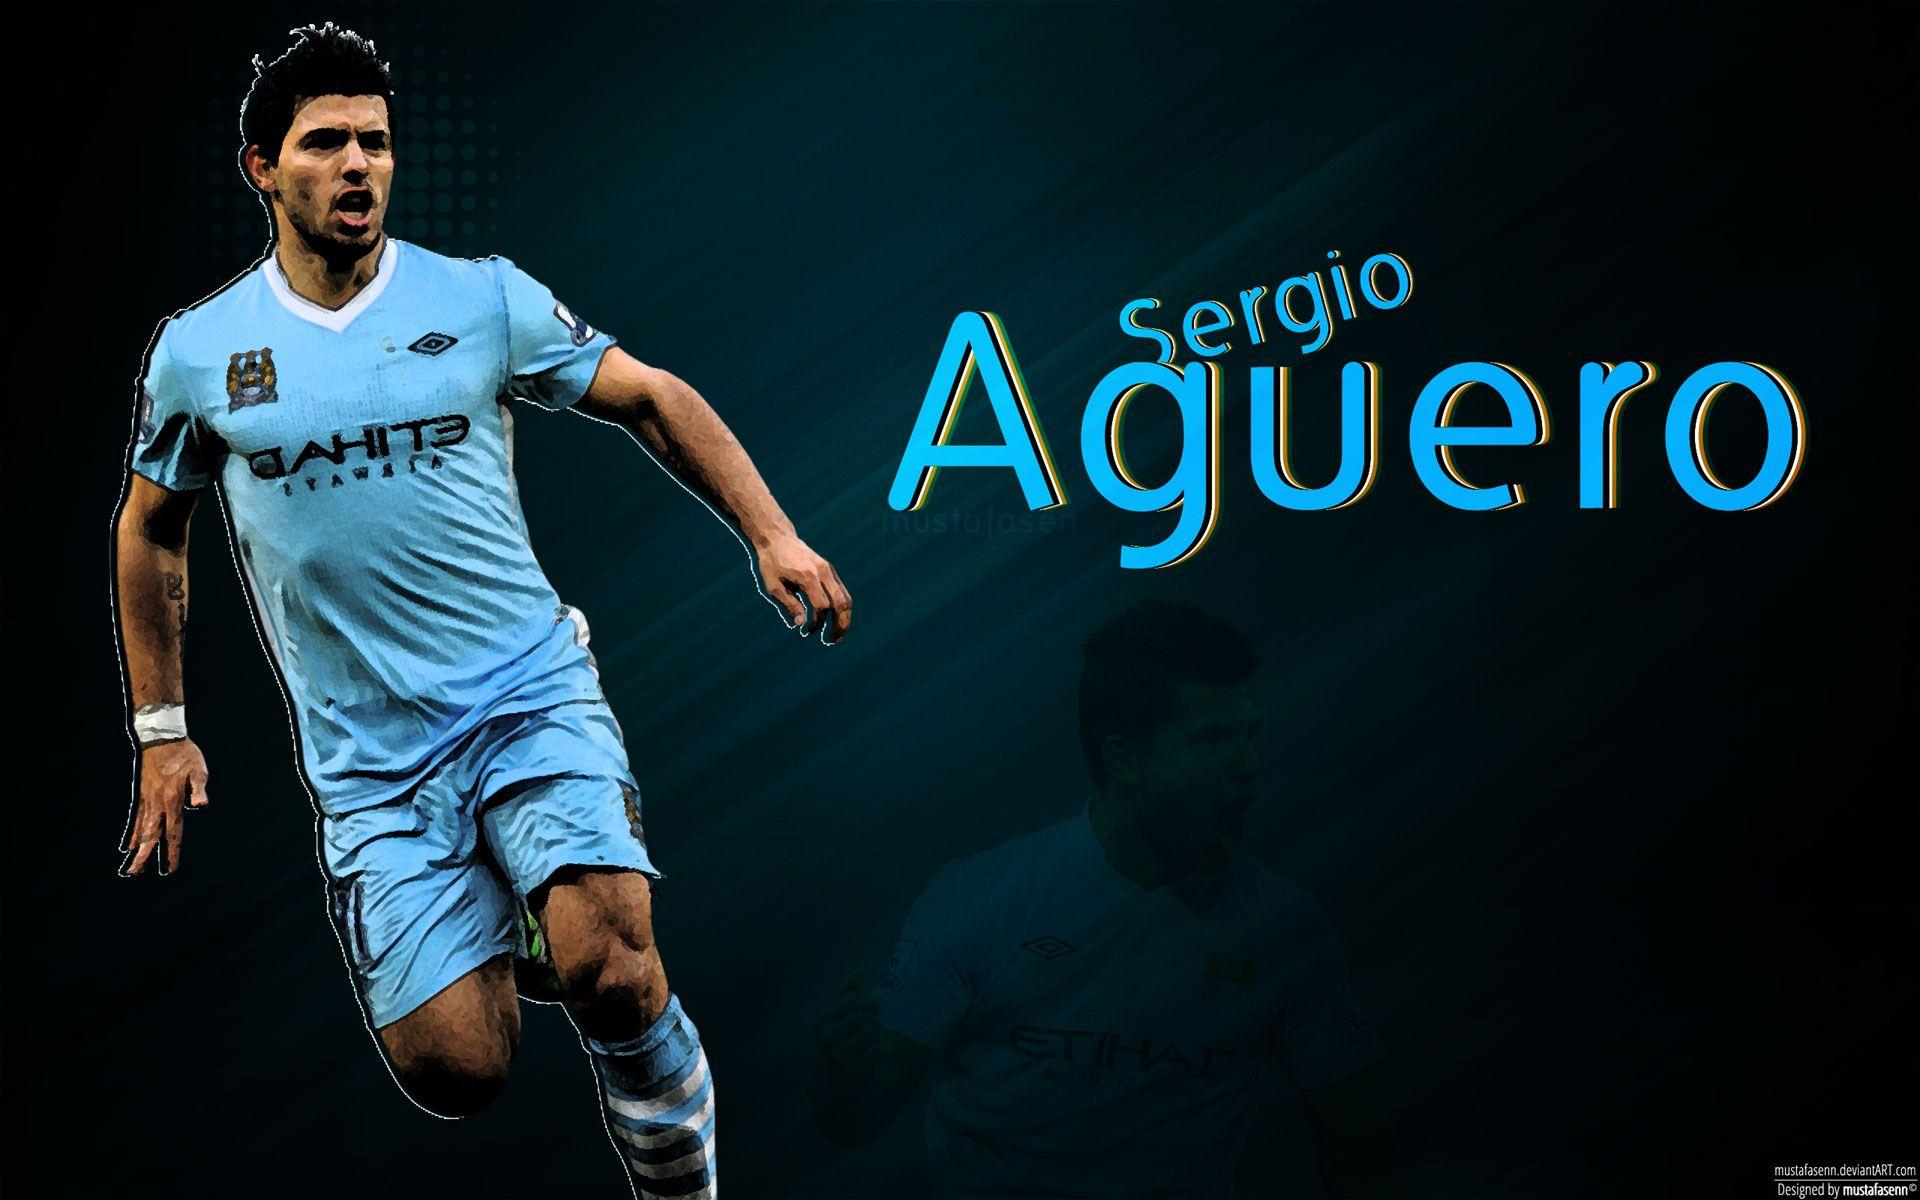 Sergio Aguero 651615 Wallpapers High Quality: Sergio Agüero Wallpapers